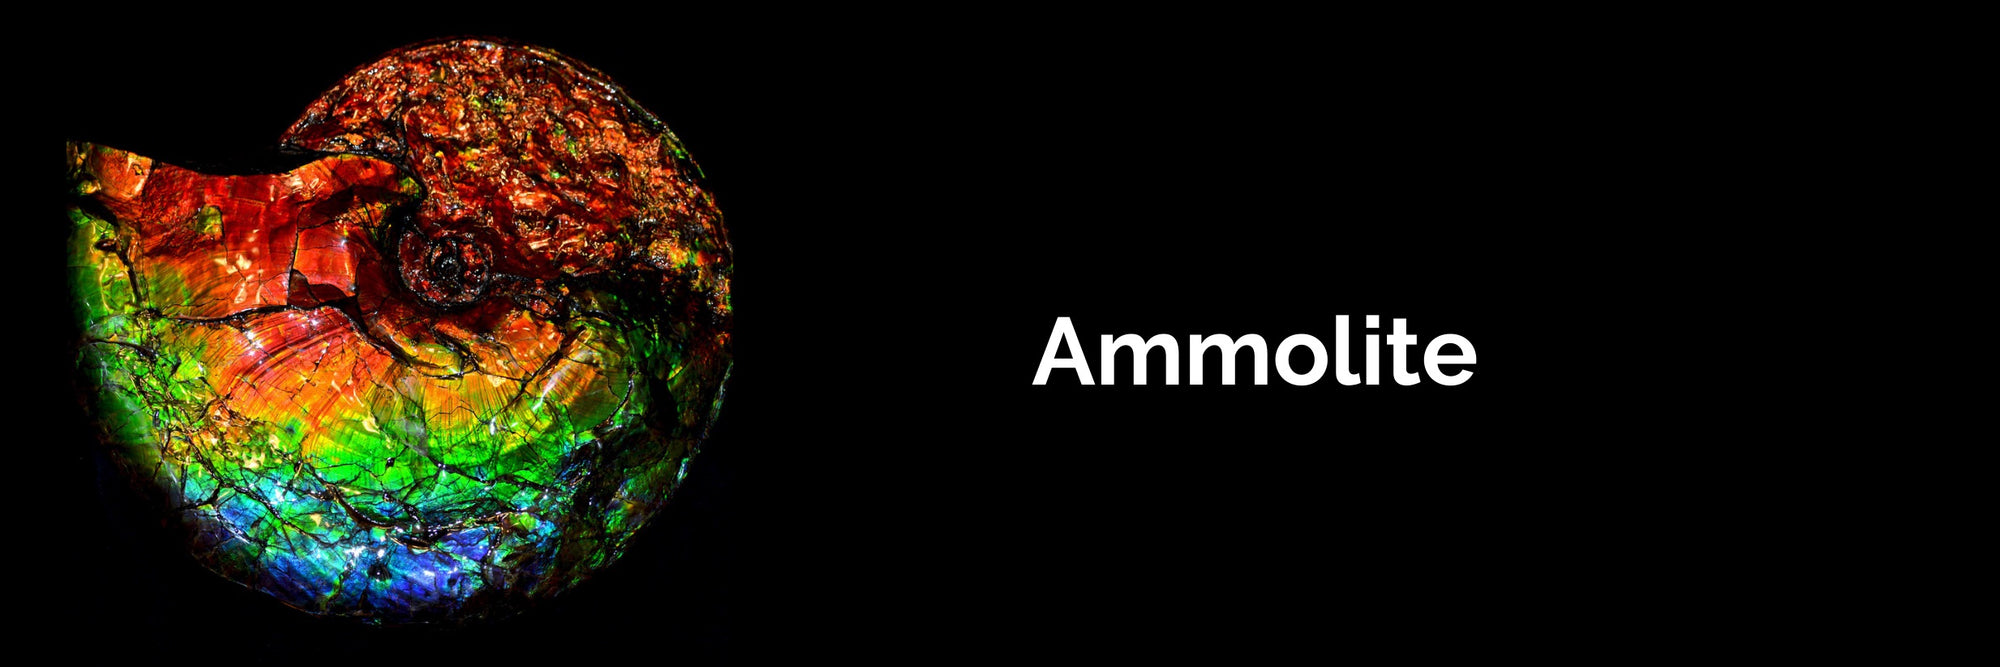 Monarch Ammolite